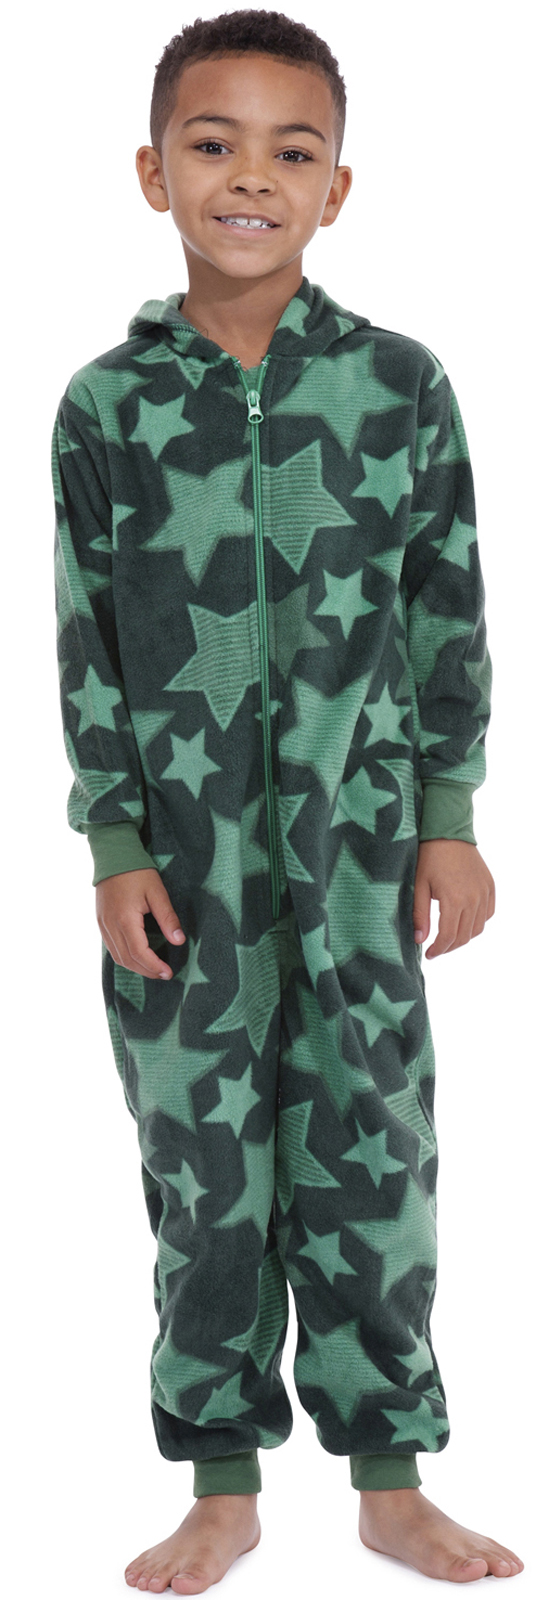 The Funzee Adult Onesies Range is growing in the USA. We will continue to offer you more choice of styles and designs based on what you tell us. Funzee produces a wide range of onesie pajamas with cool designs: with hoods or without, with feet or without, even with a Butt Flap.